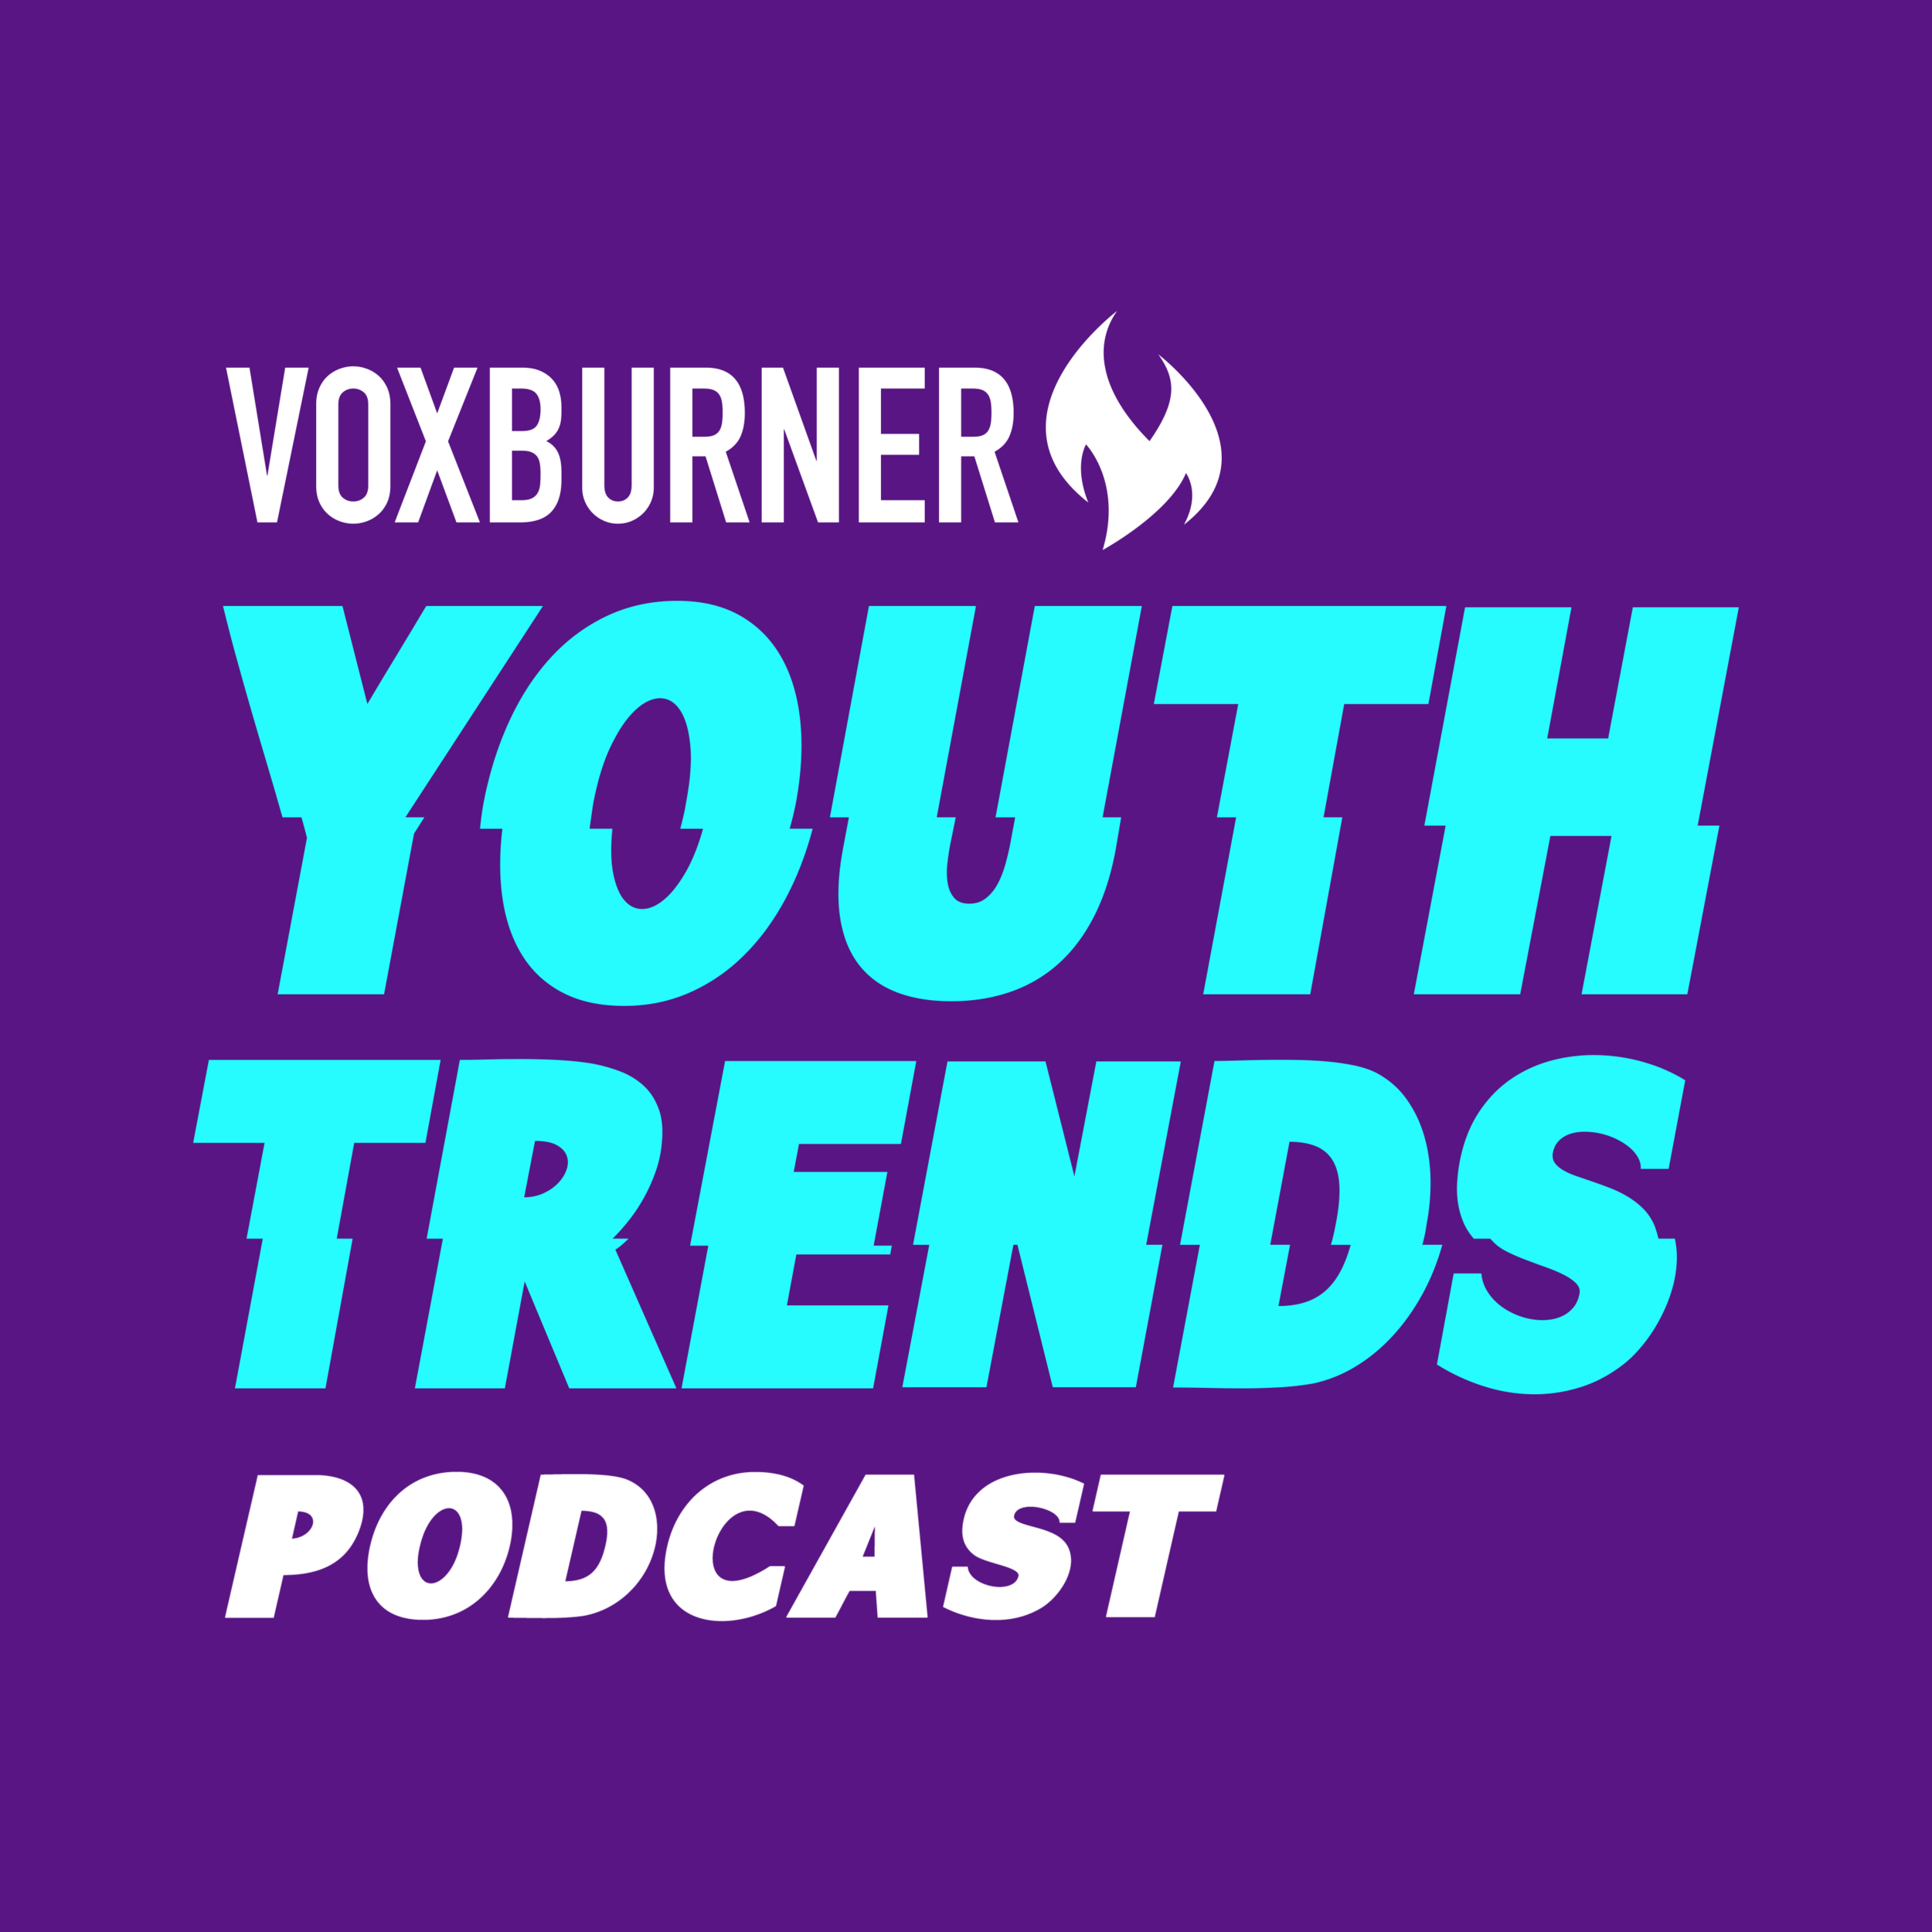 Voxburner Youth Trends Podcast